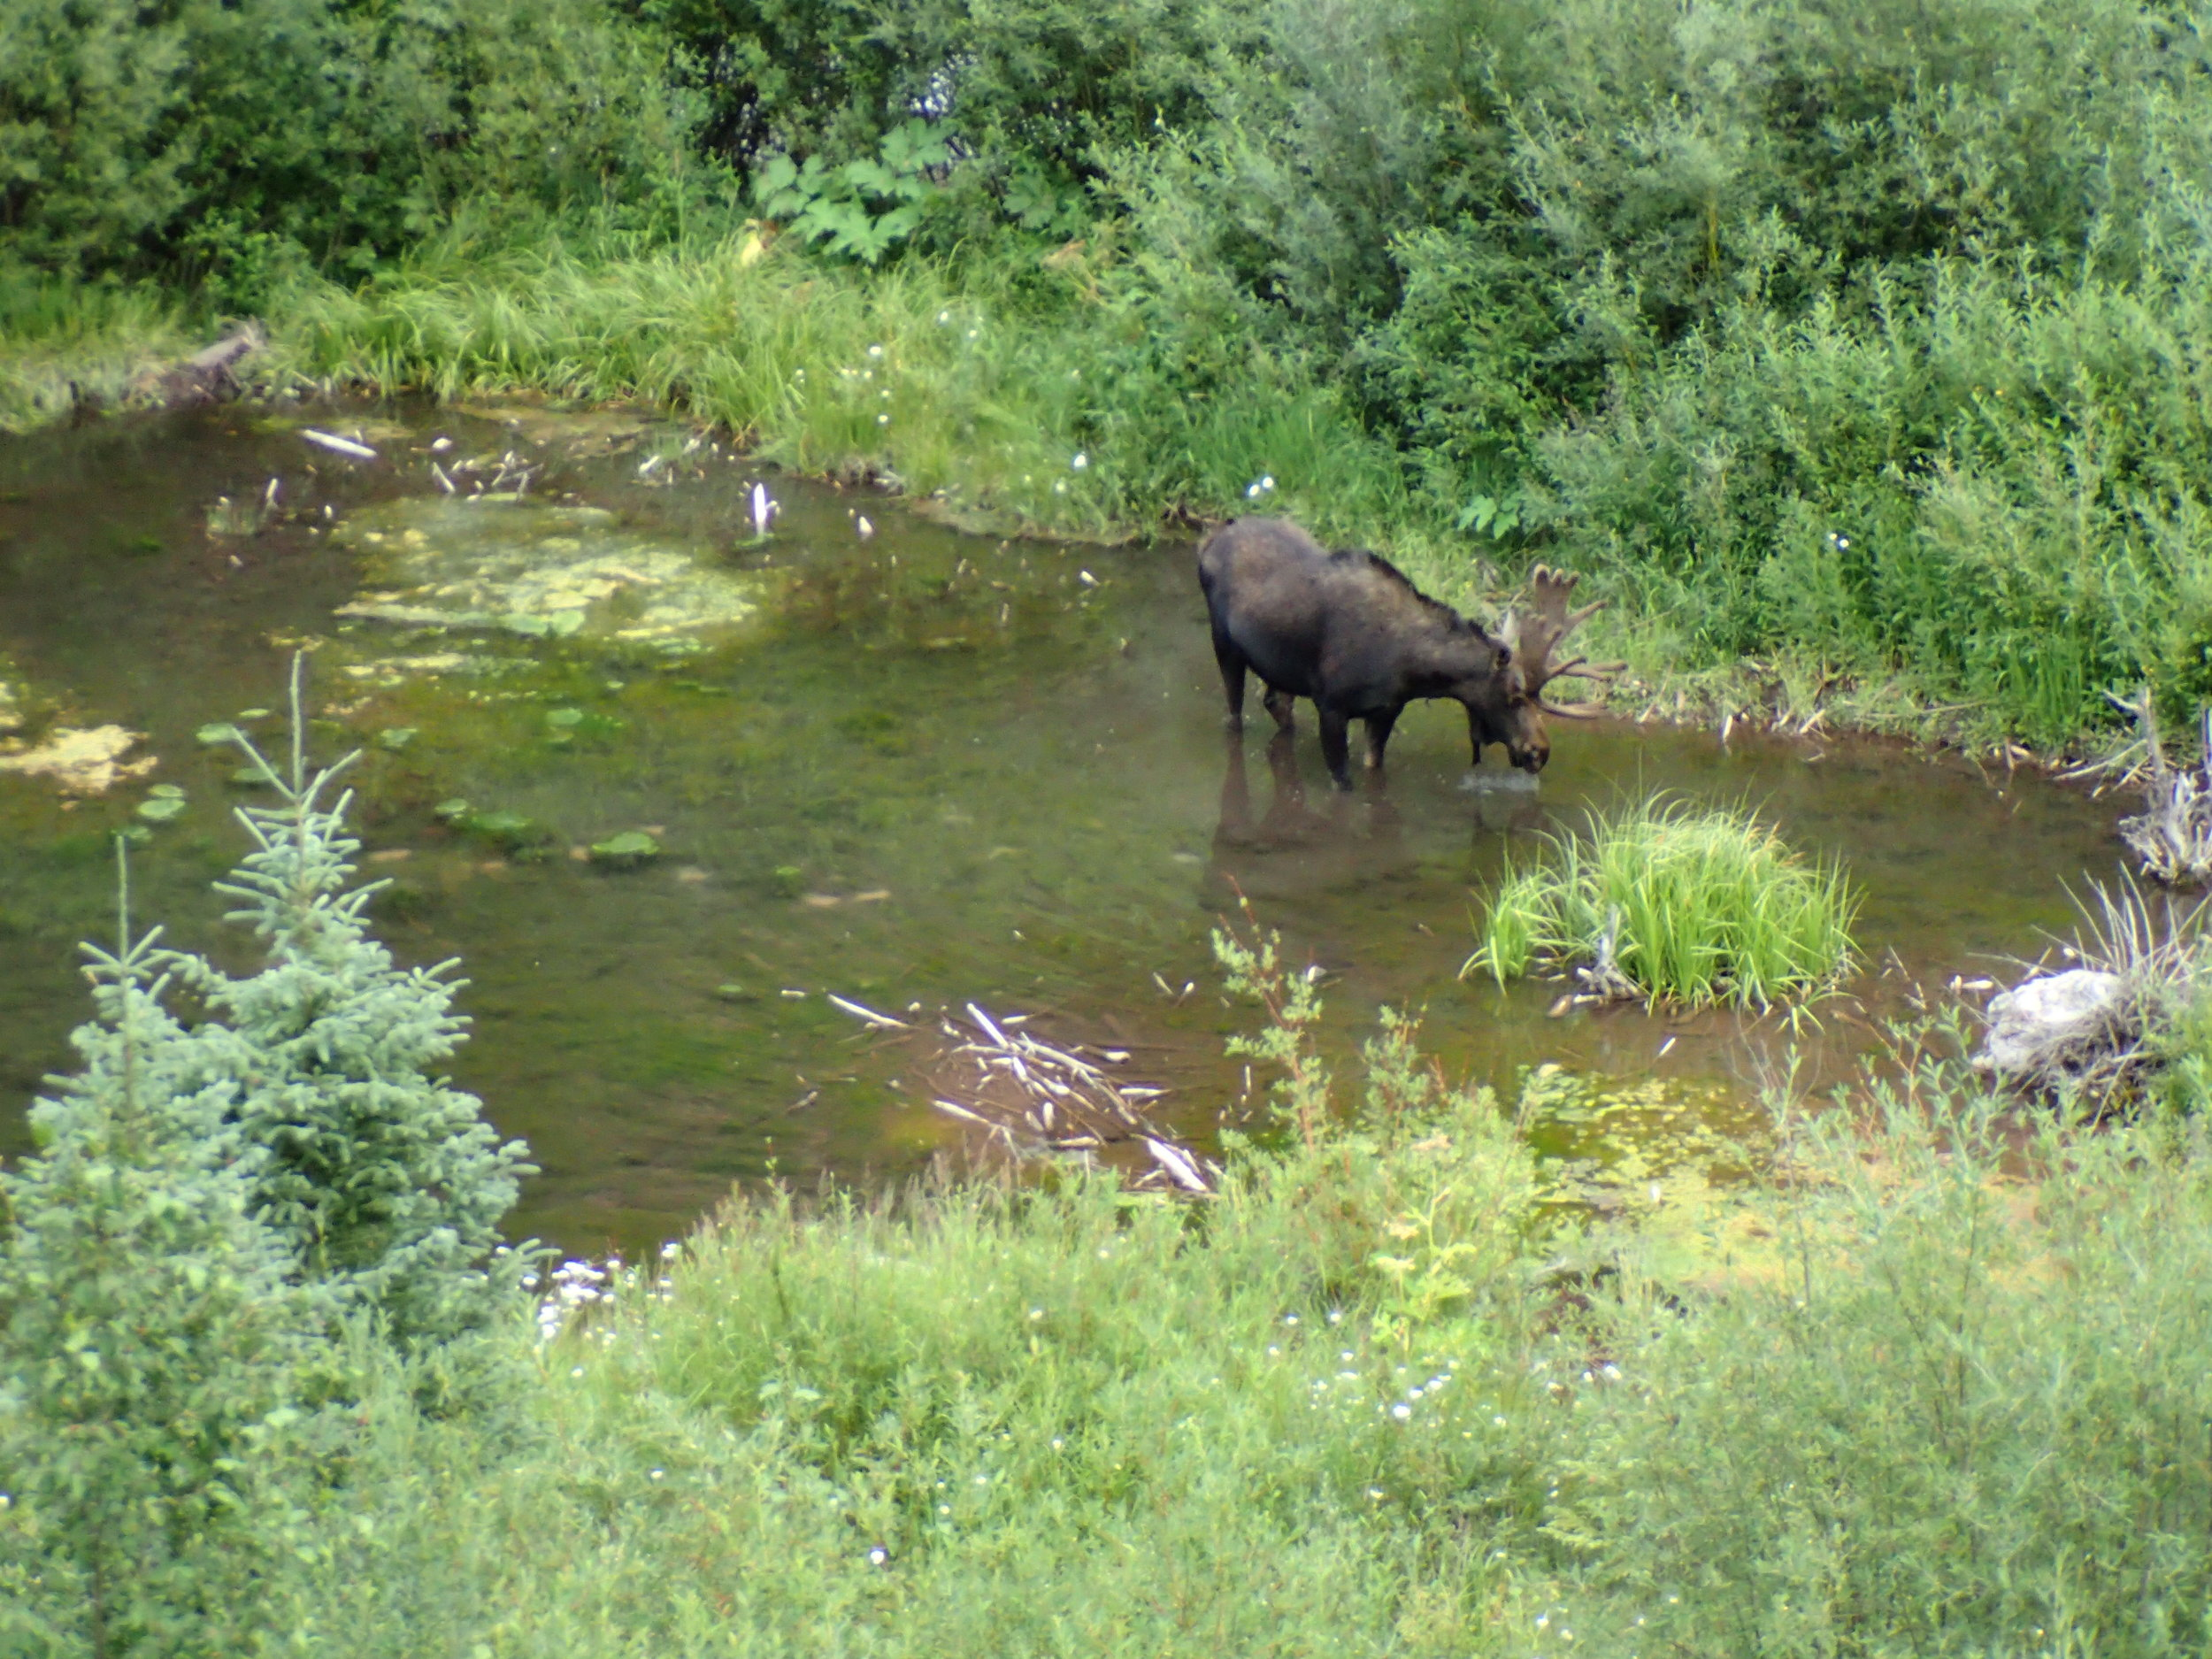 My first moose sighting! It was prime time because we were super close, but safely above on the road. Watched him for five minutes hang out and drink the creek.